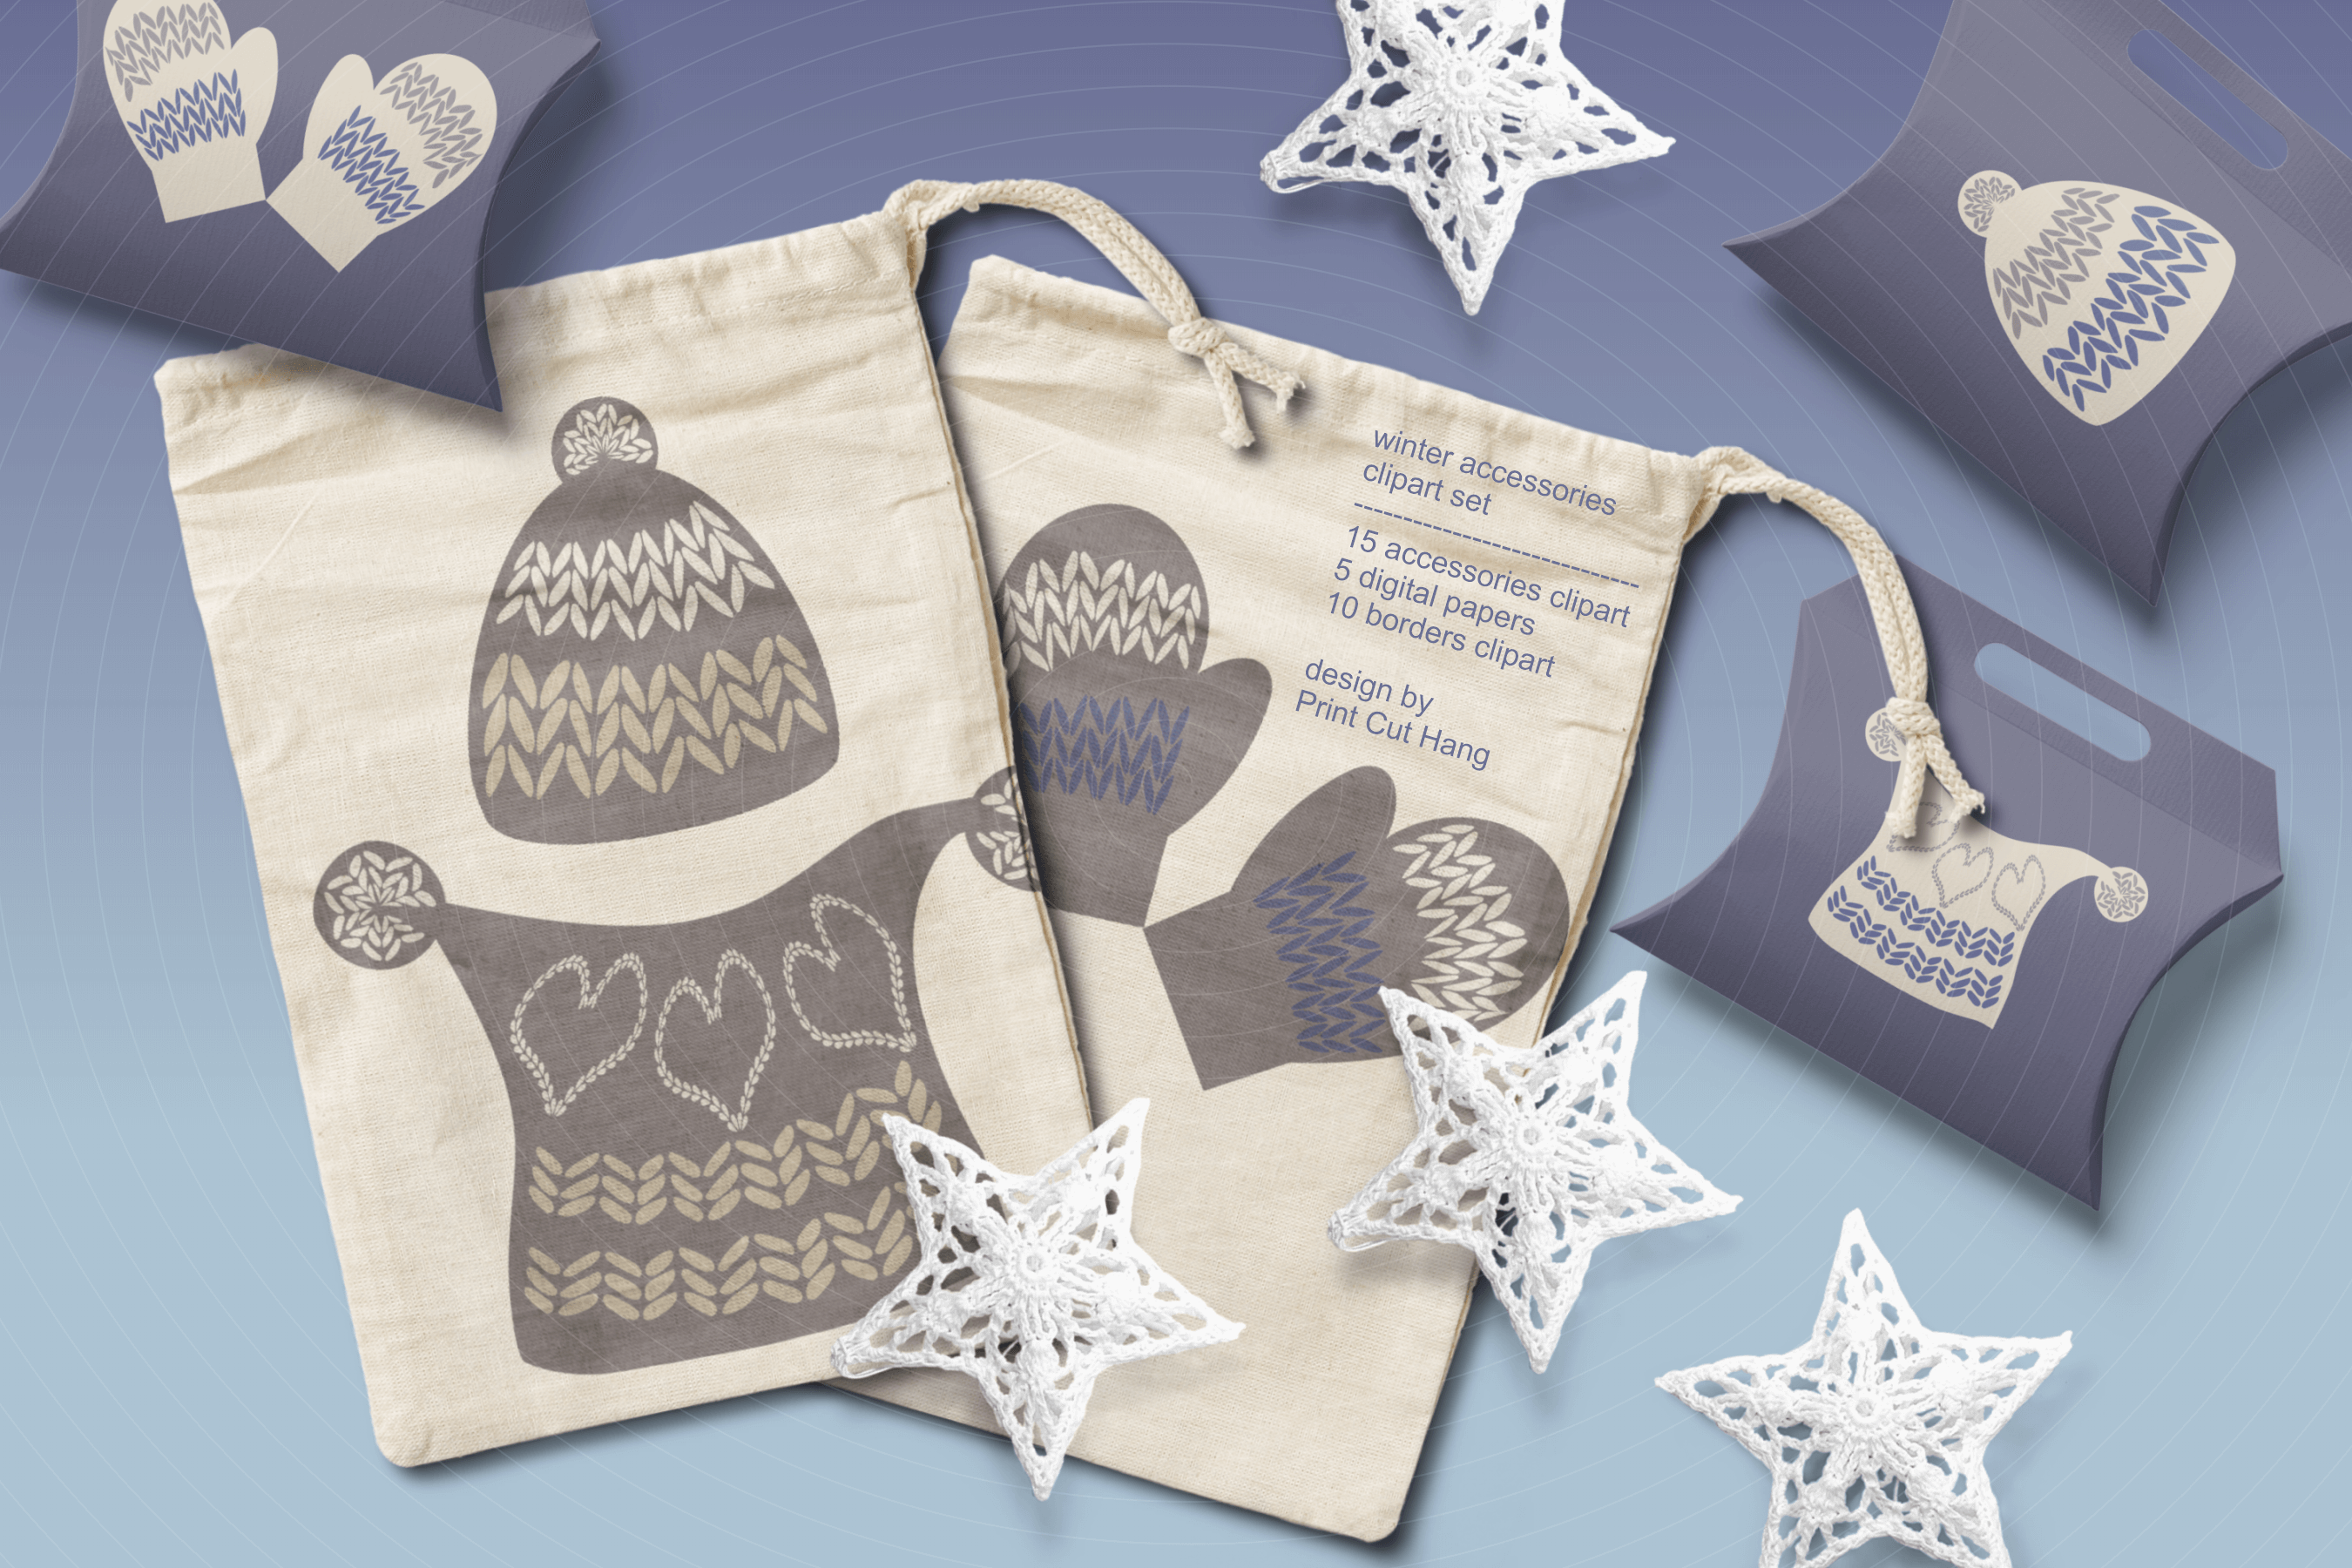 Winter Knitted Accessories Clipart & Scrapbooking Papers Set example image 8